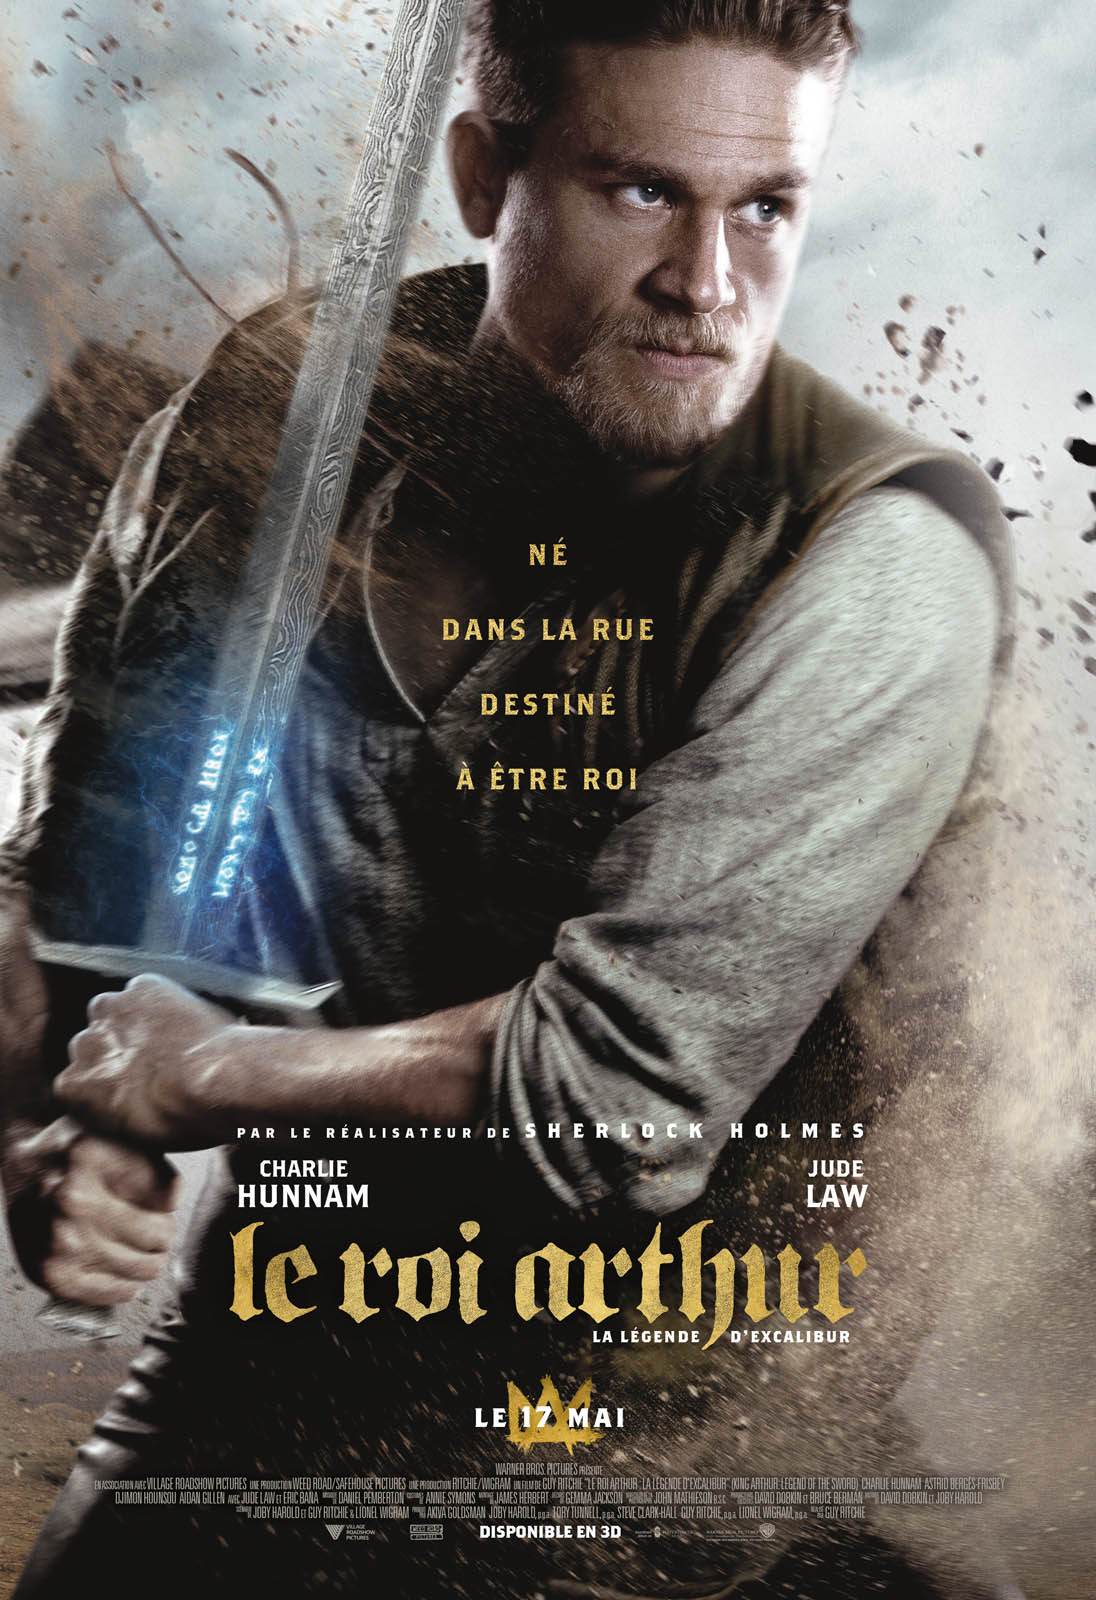 Le Roi Arthur: La Légende d'Excalibur streaming